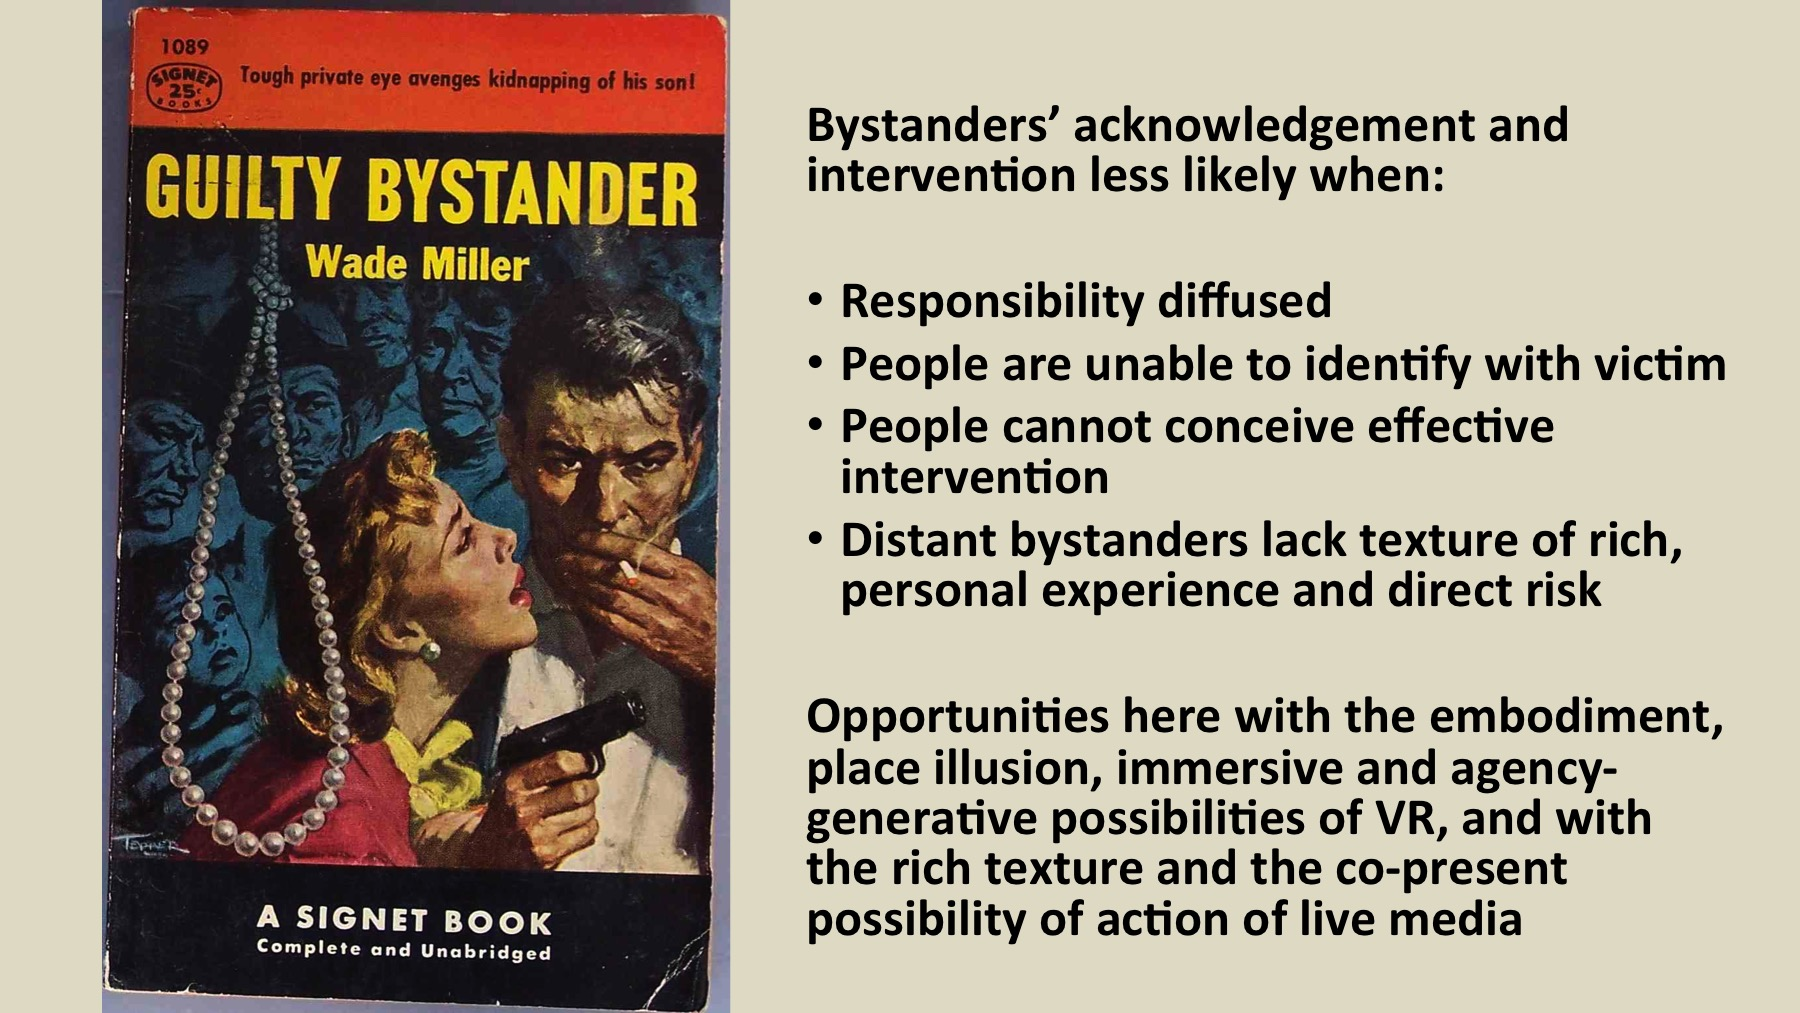 BystanderAcknowledgement